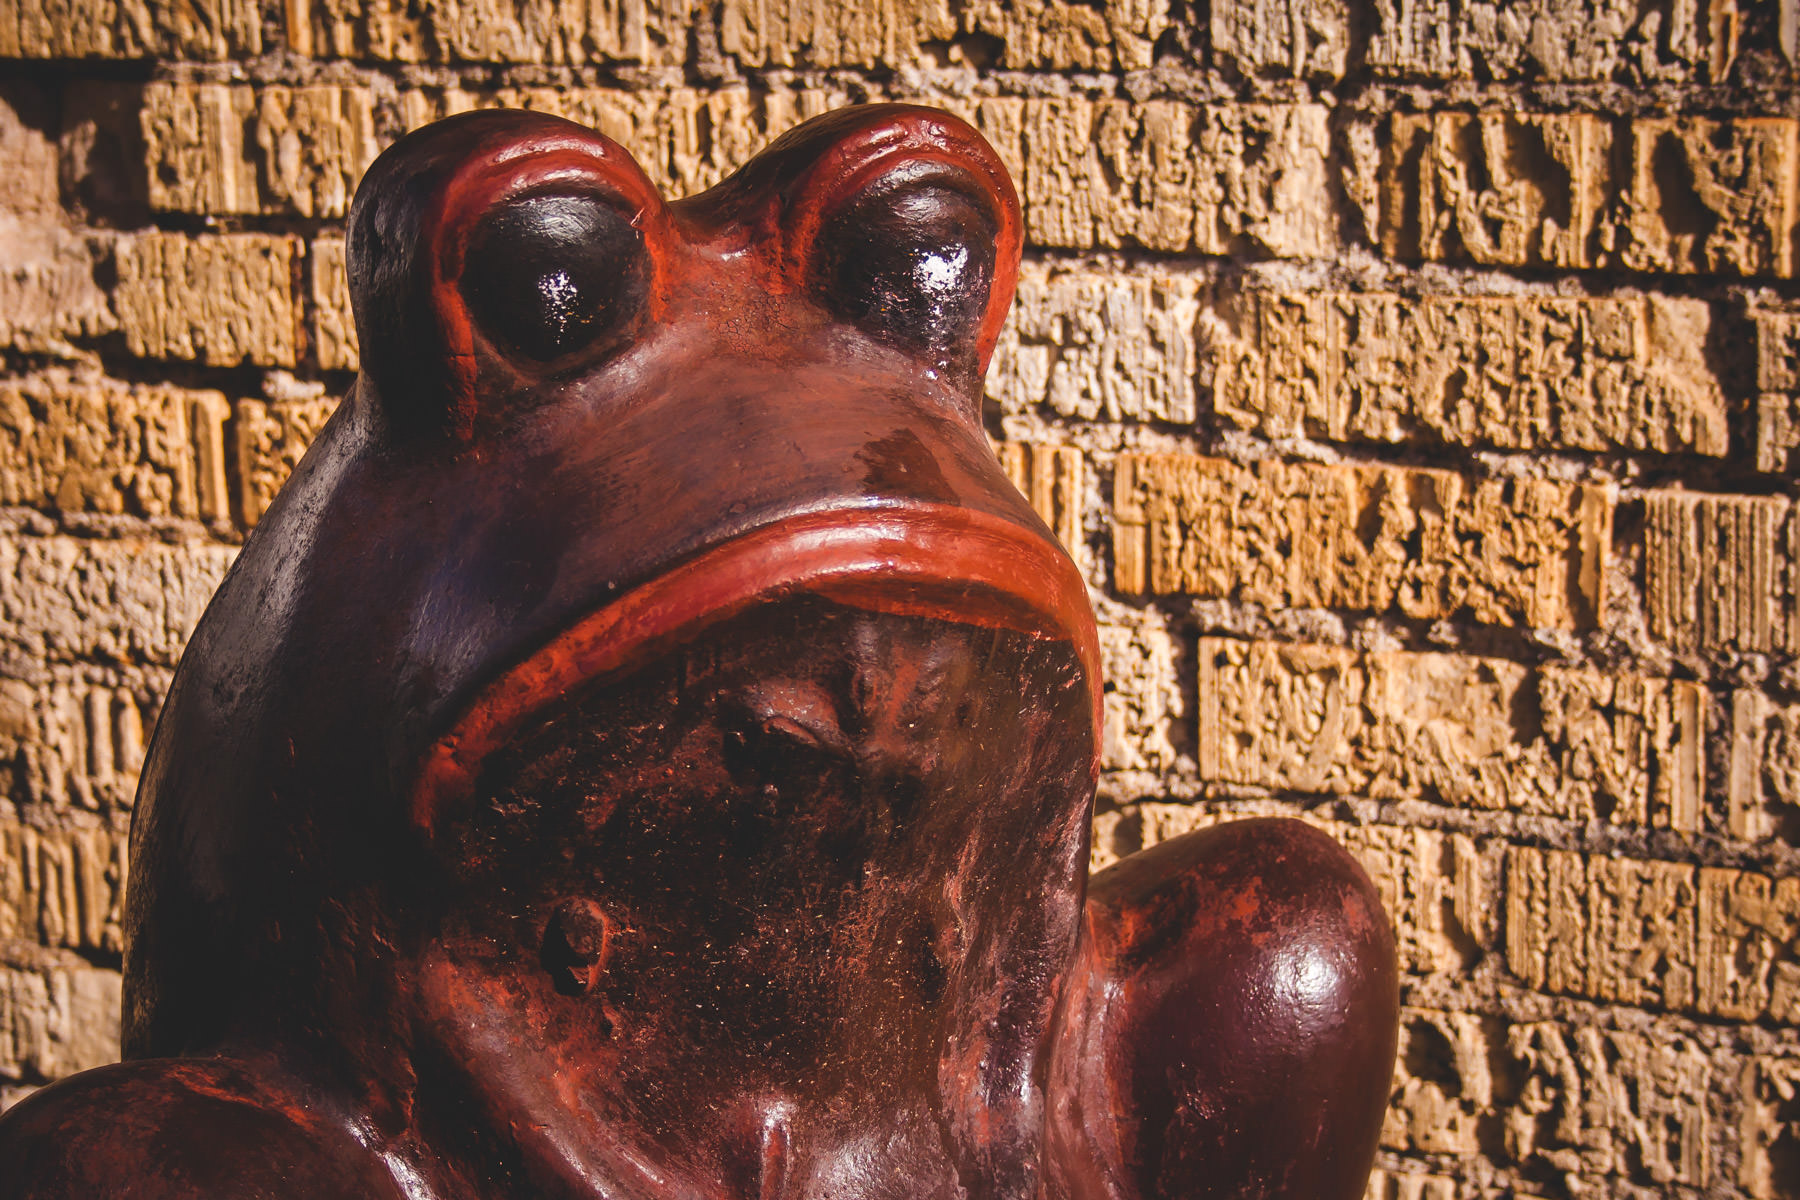 A ceramic frog in McKinney, Texas.